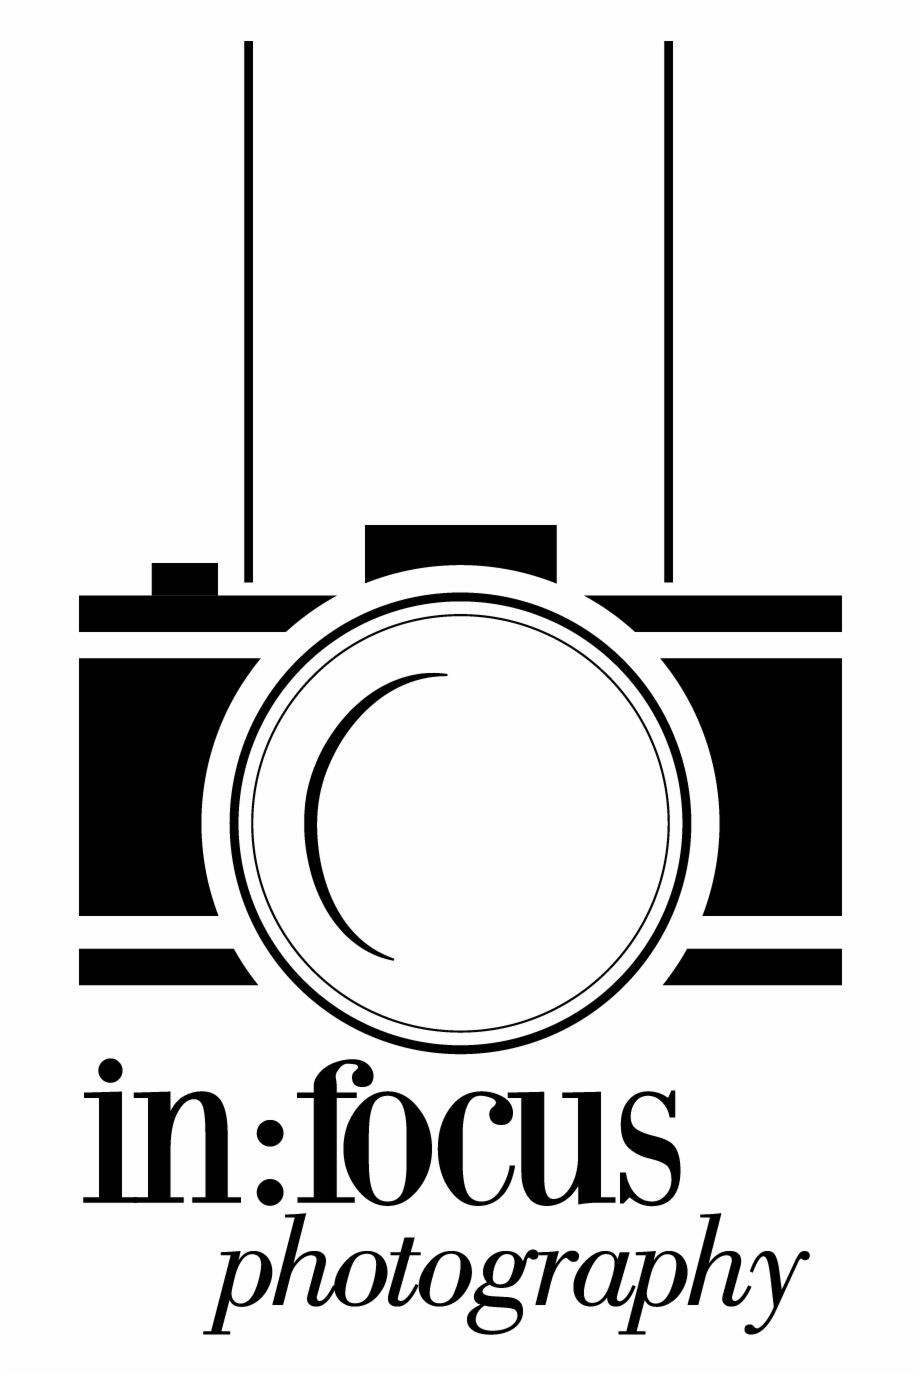 Photographer Logotype Png Photography Logo Png Transparent Png Download 252897 Vippng